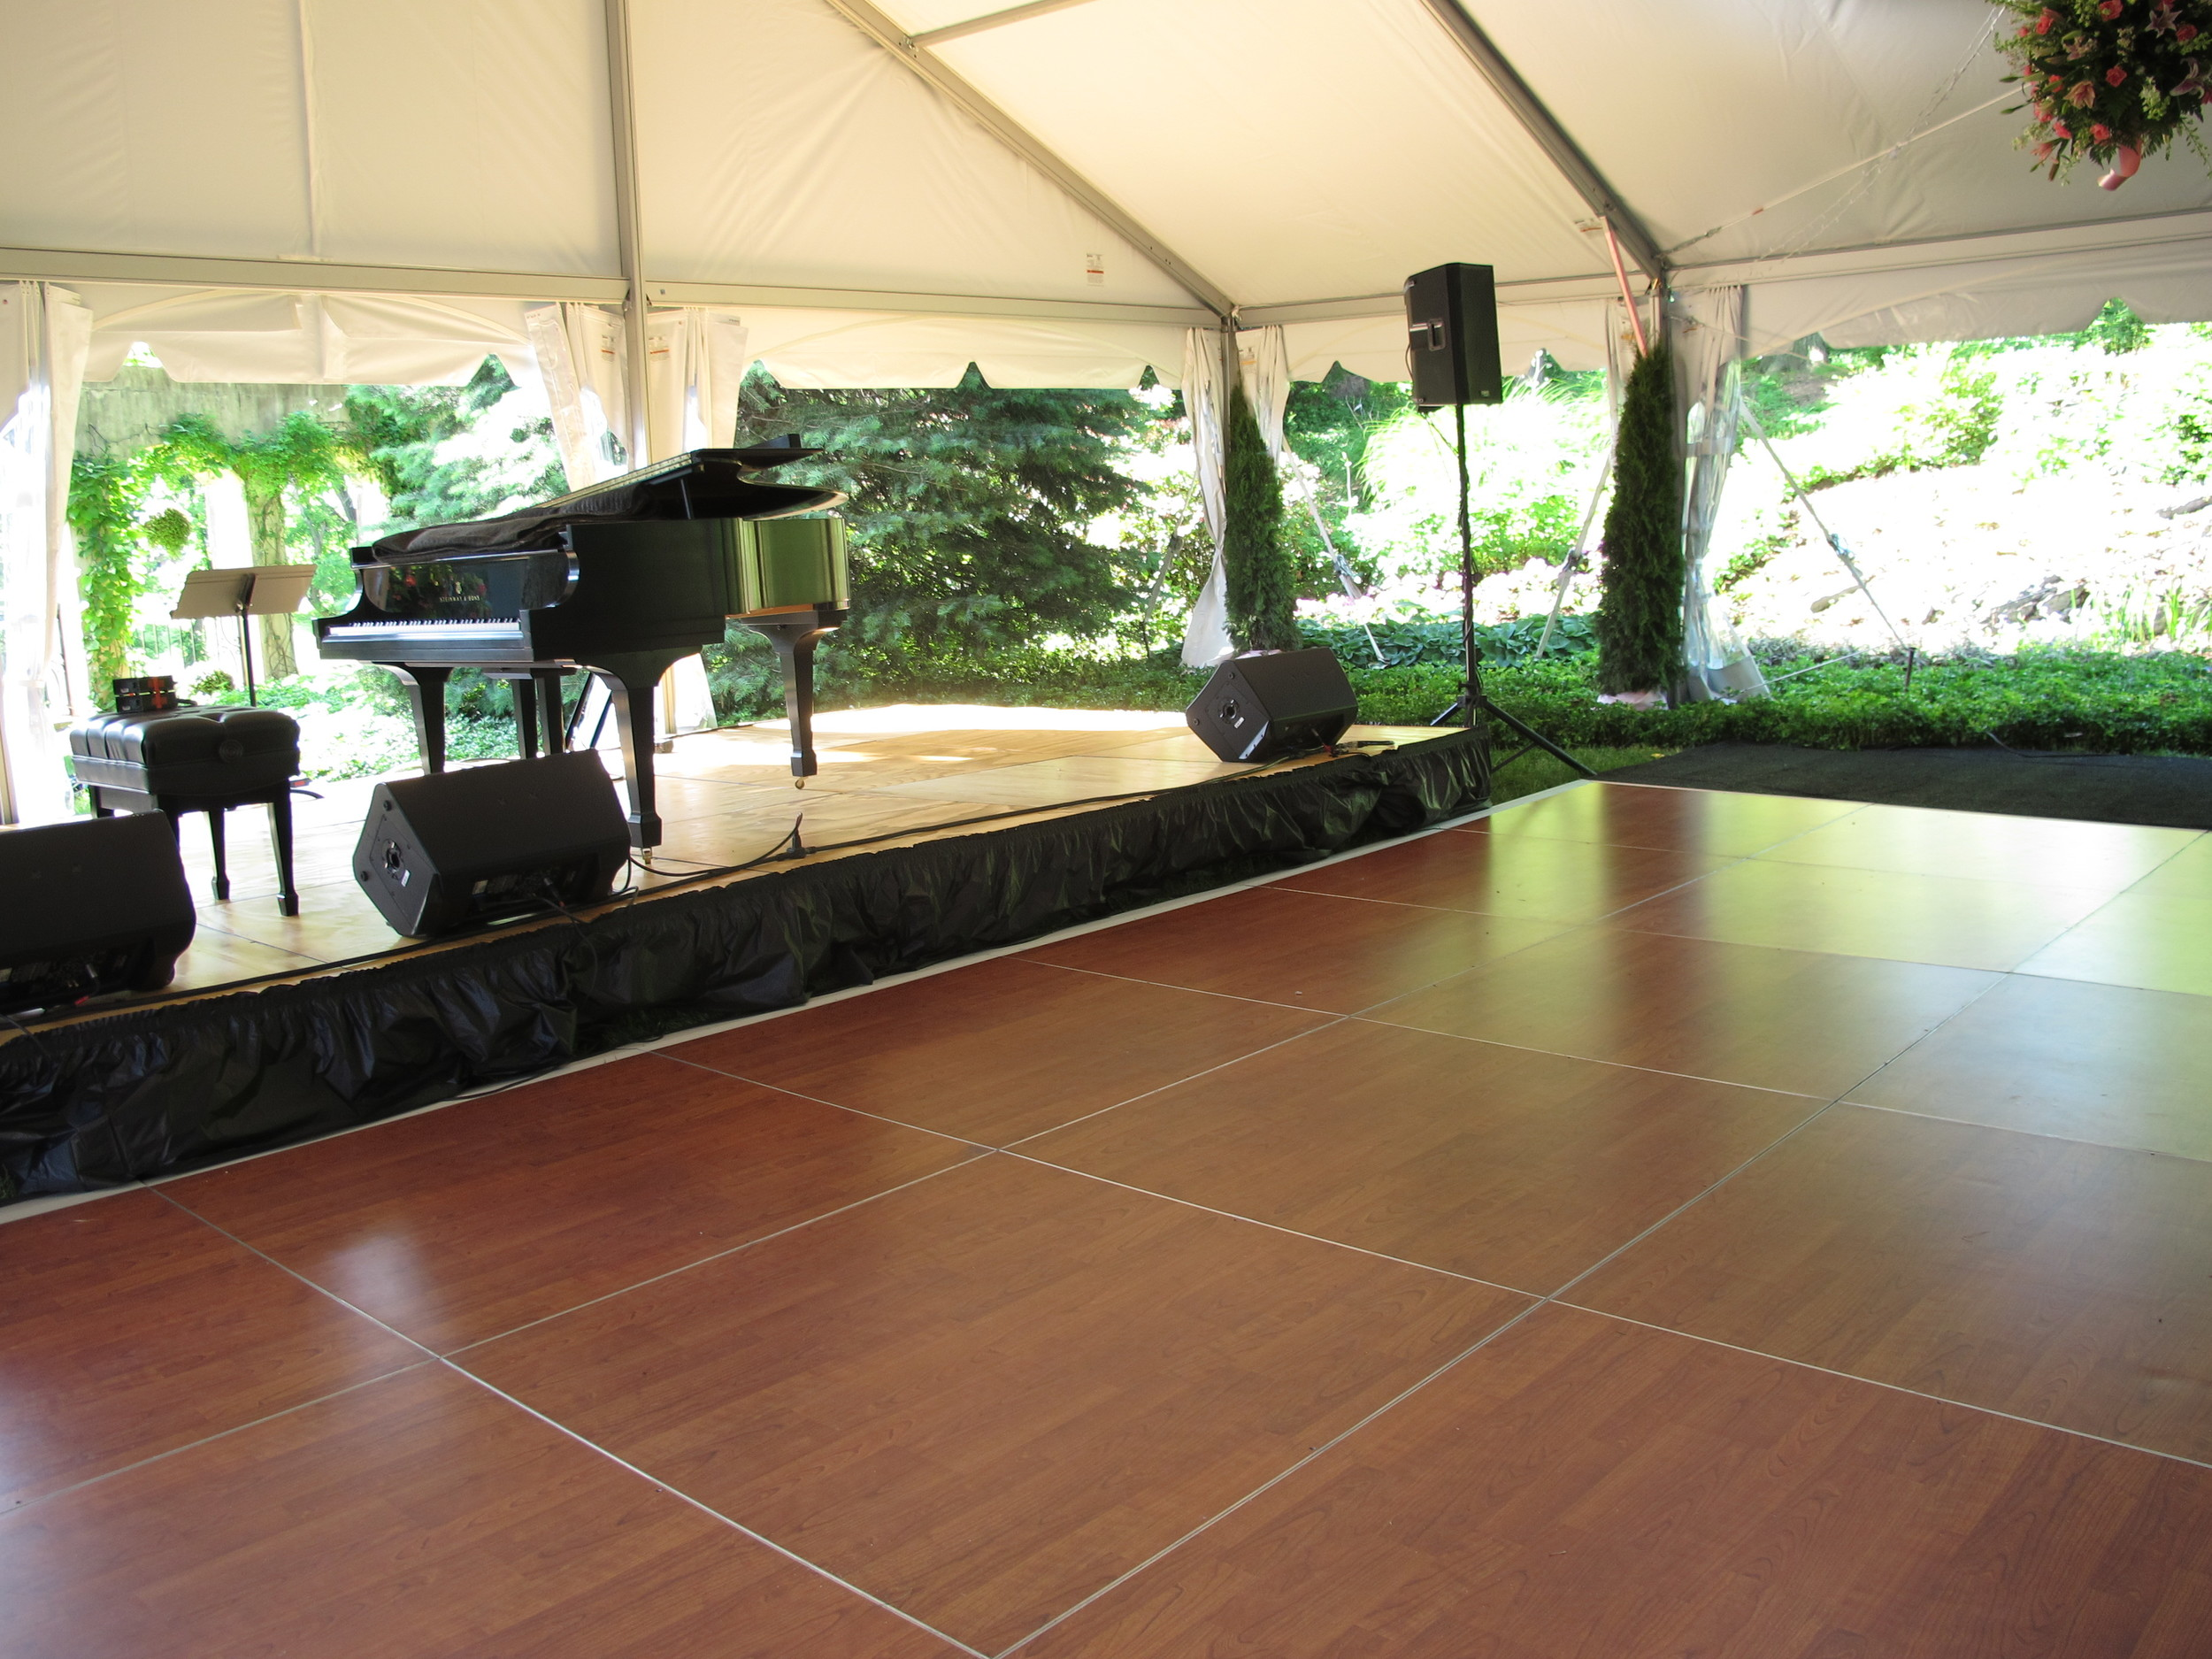 Rental stage for event